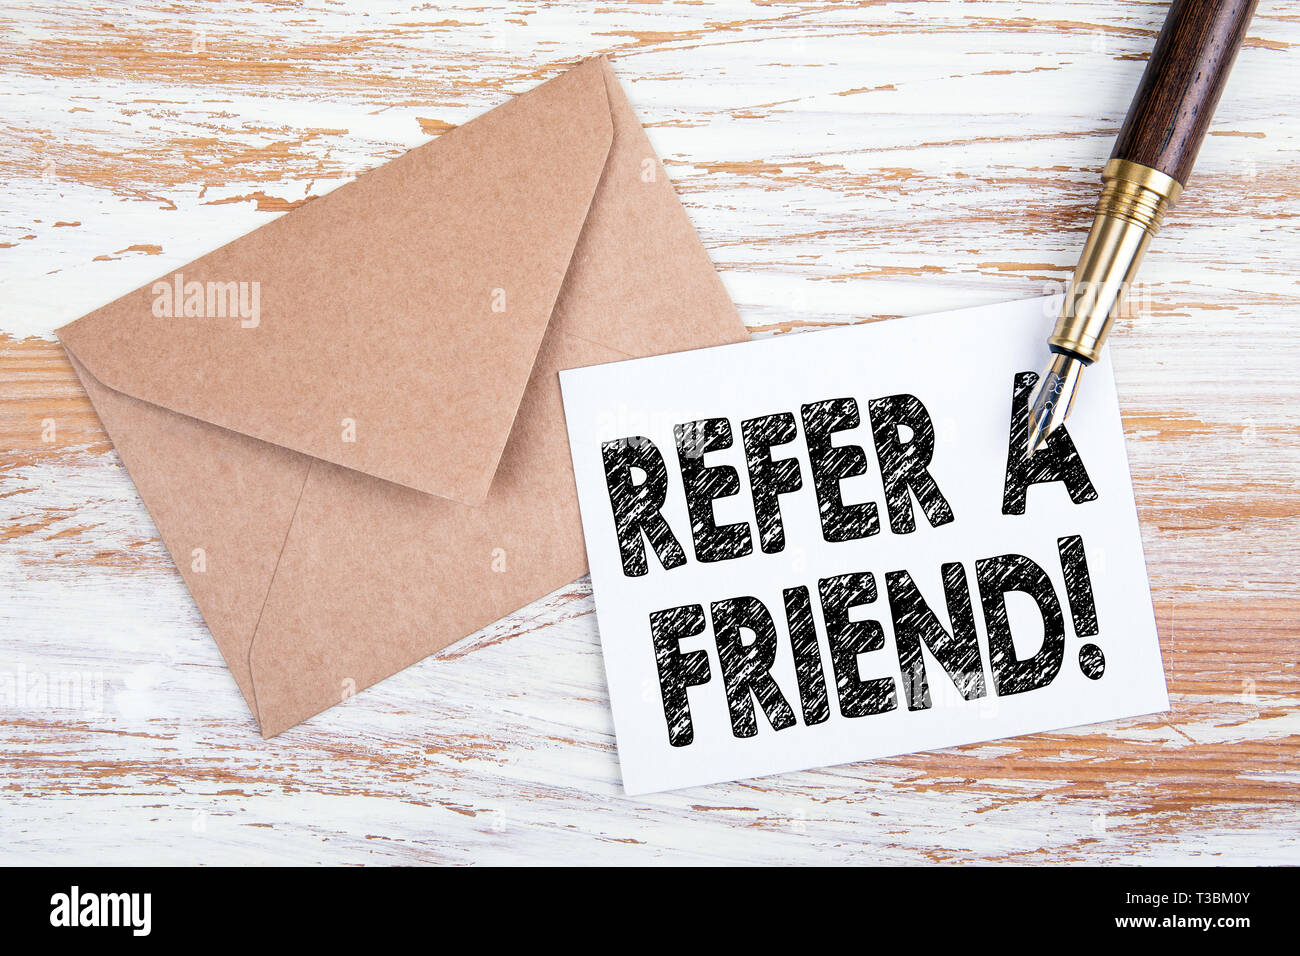 Refer a friend. Paper letter and pen - Stock Image